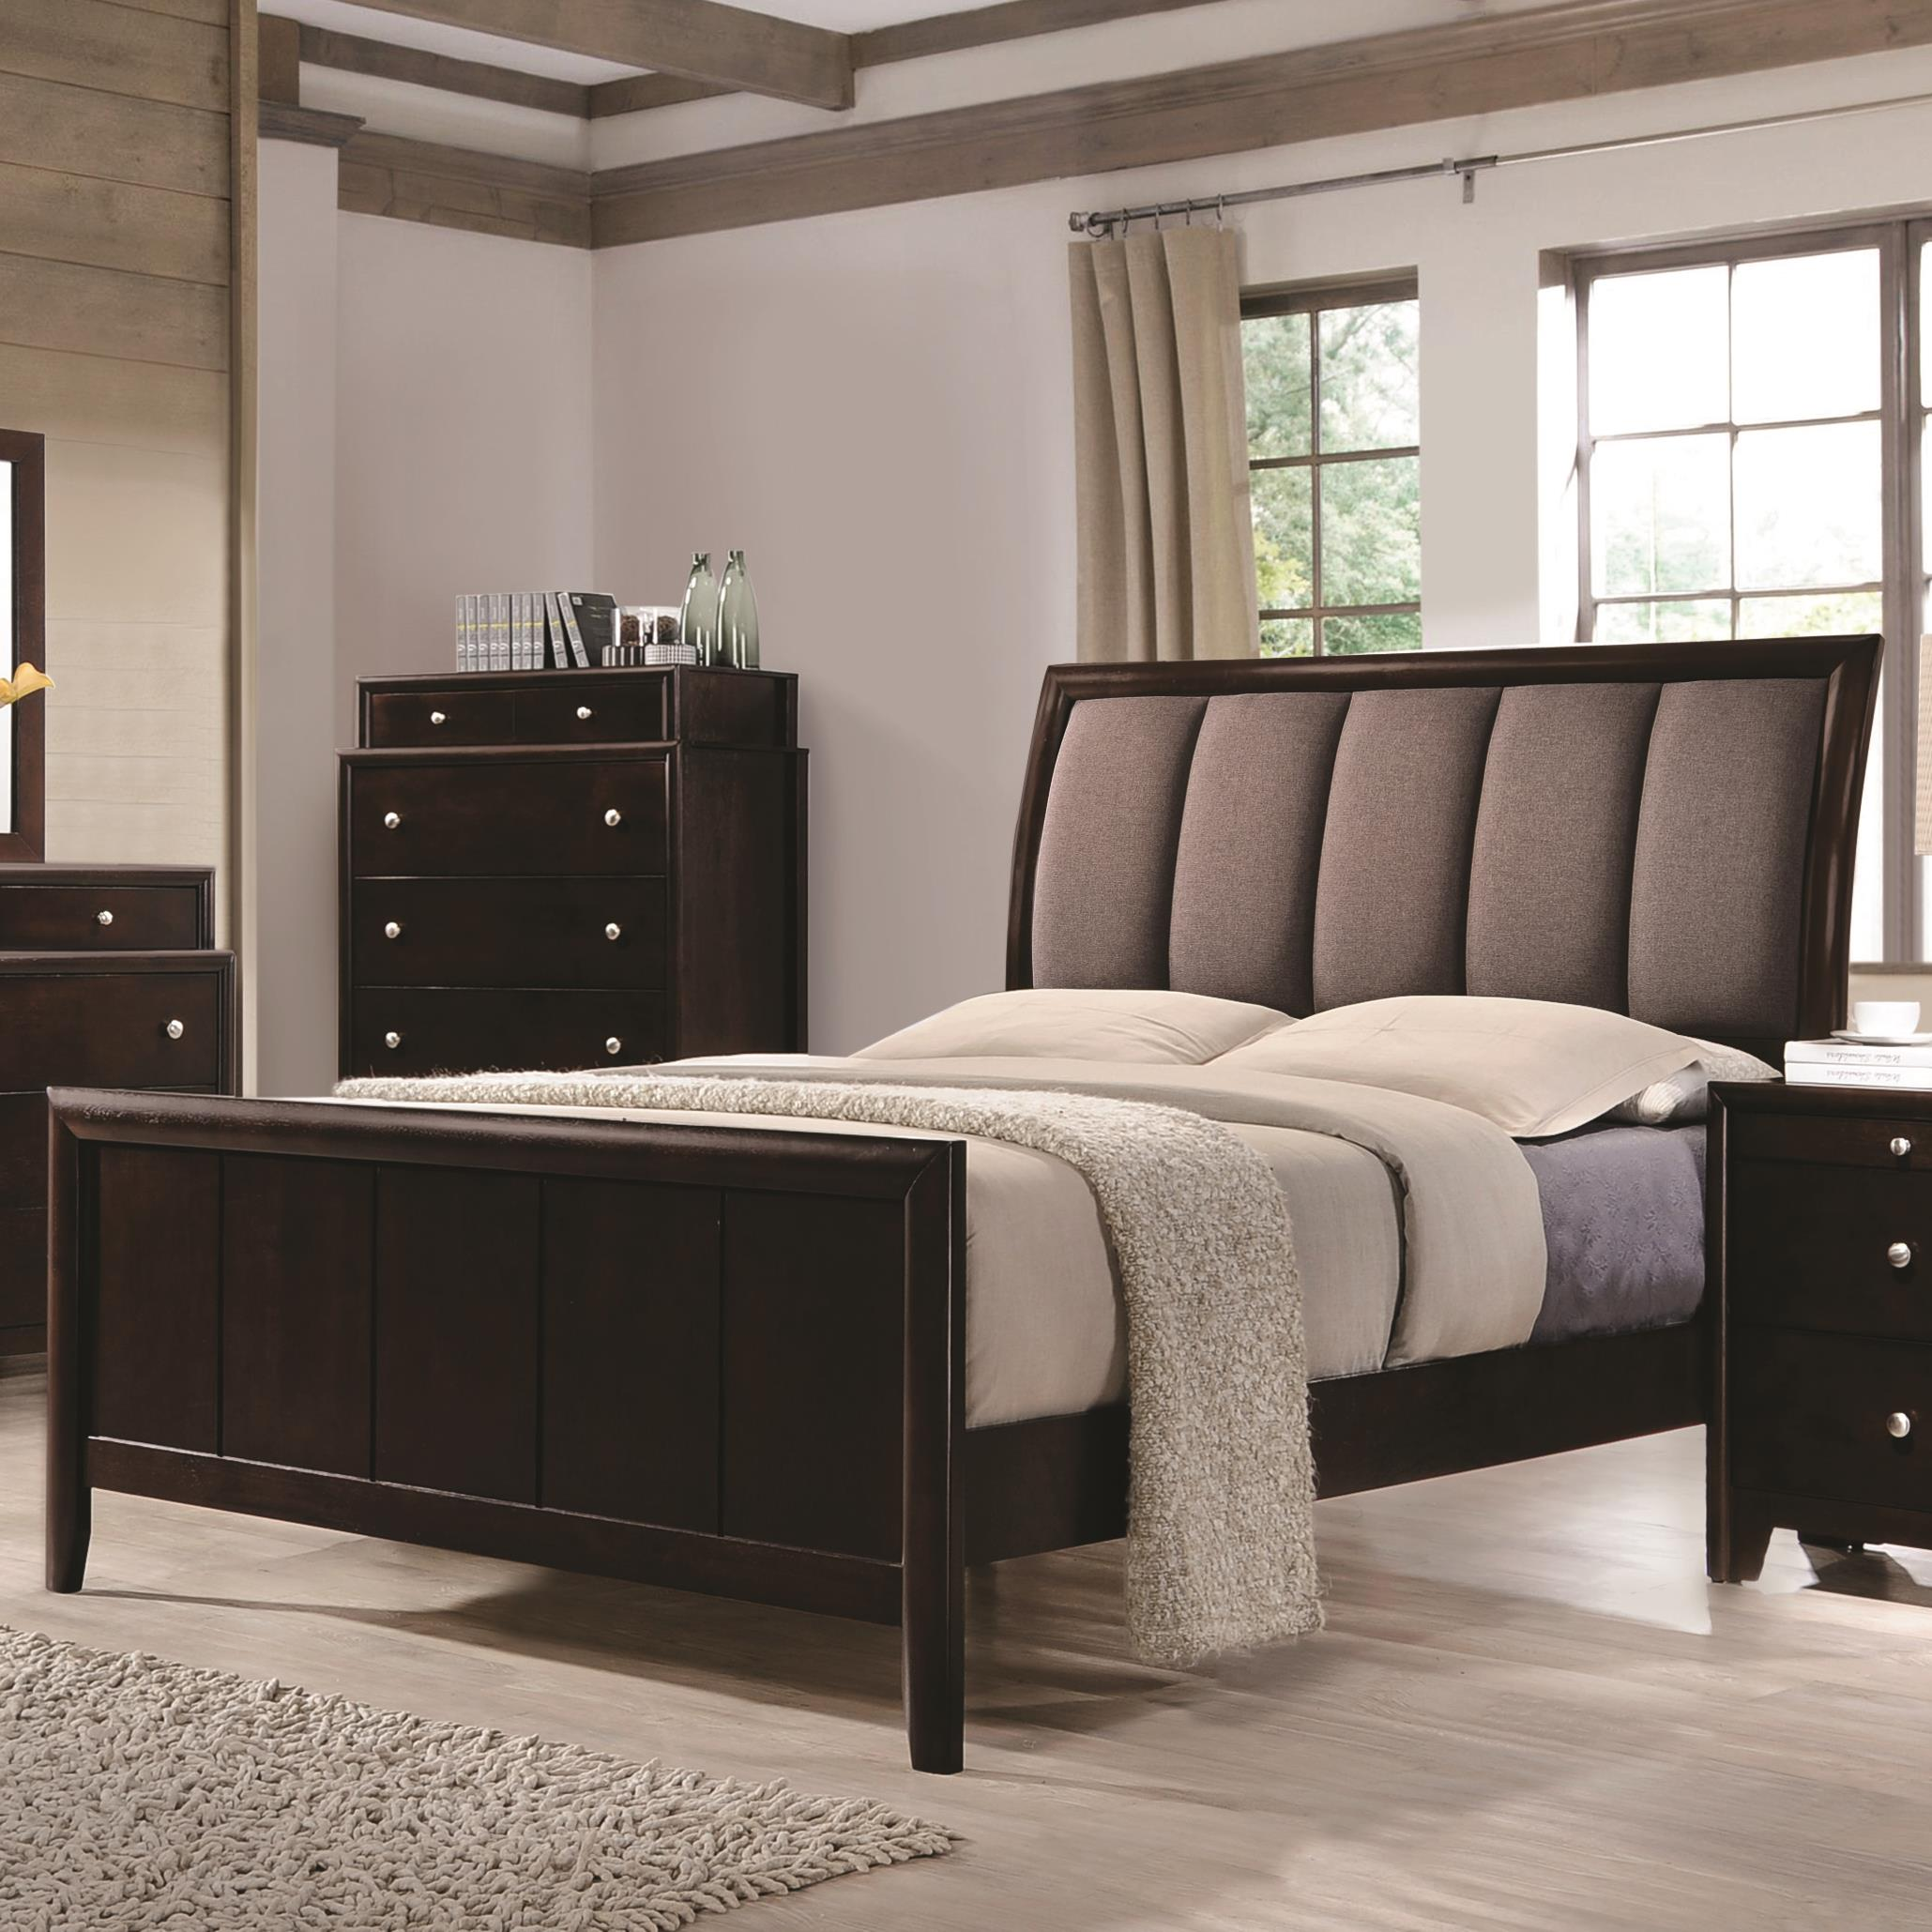 Coaster Madison Eastern King Bed With Upholstered Headboard Value City Furniture Upholstered